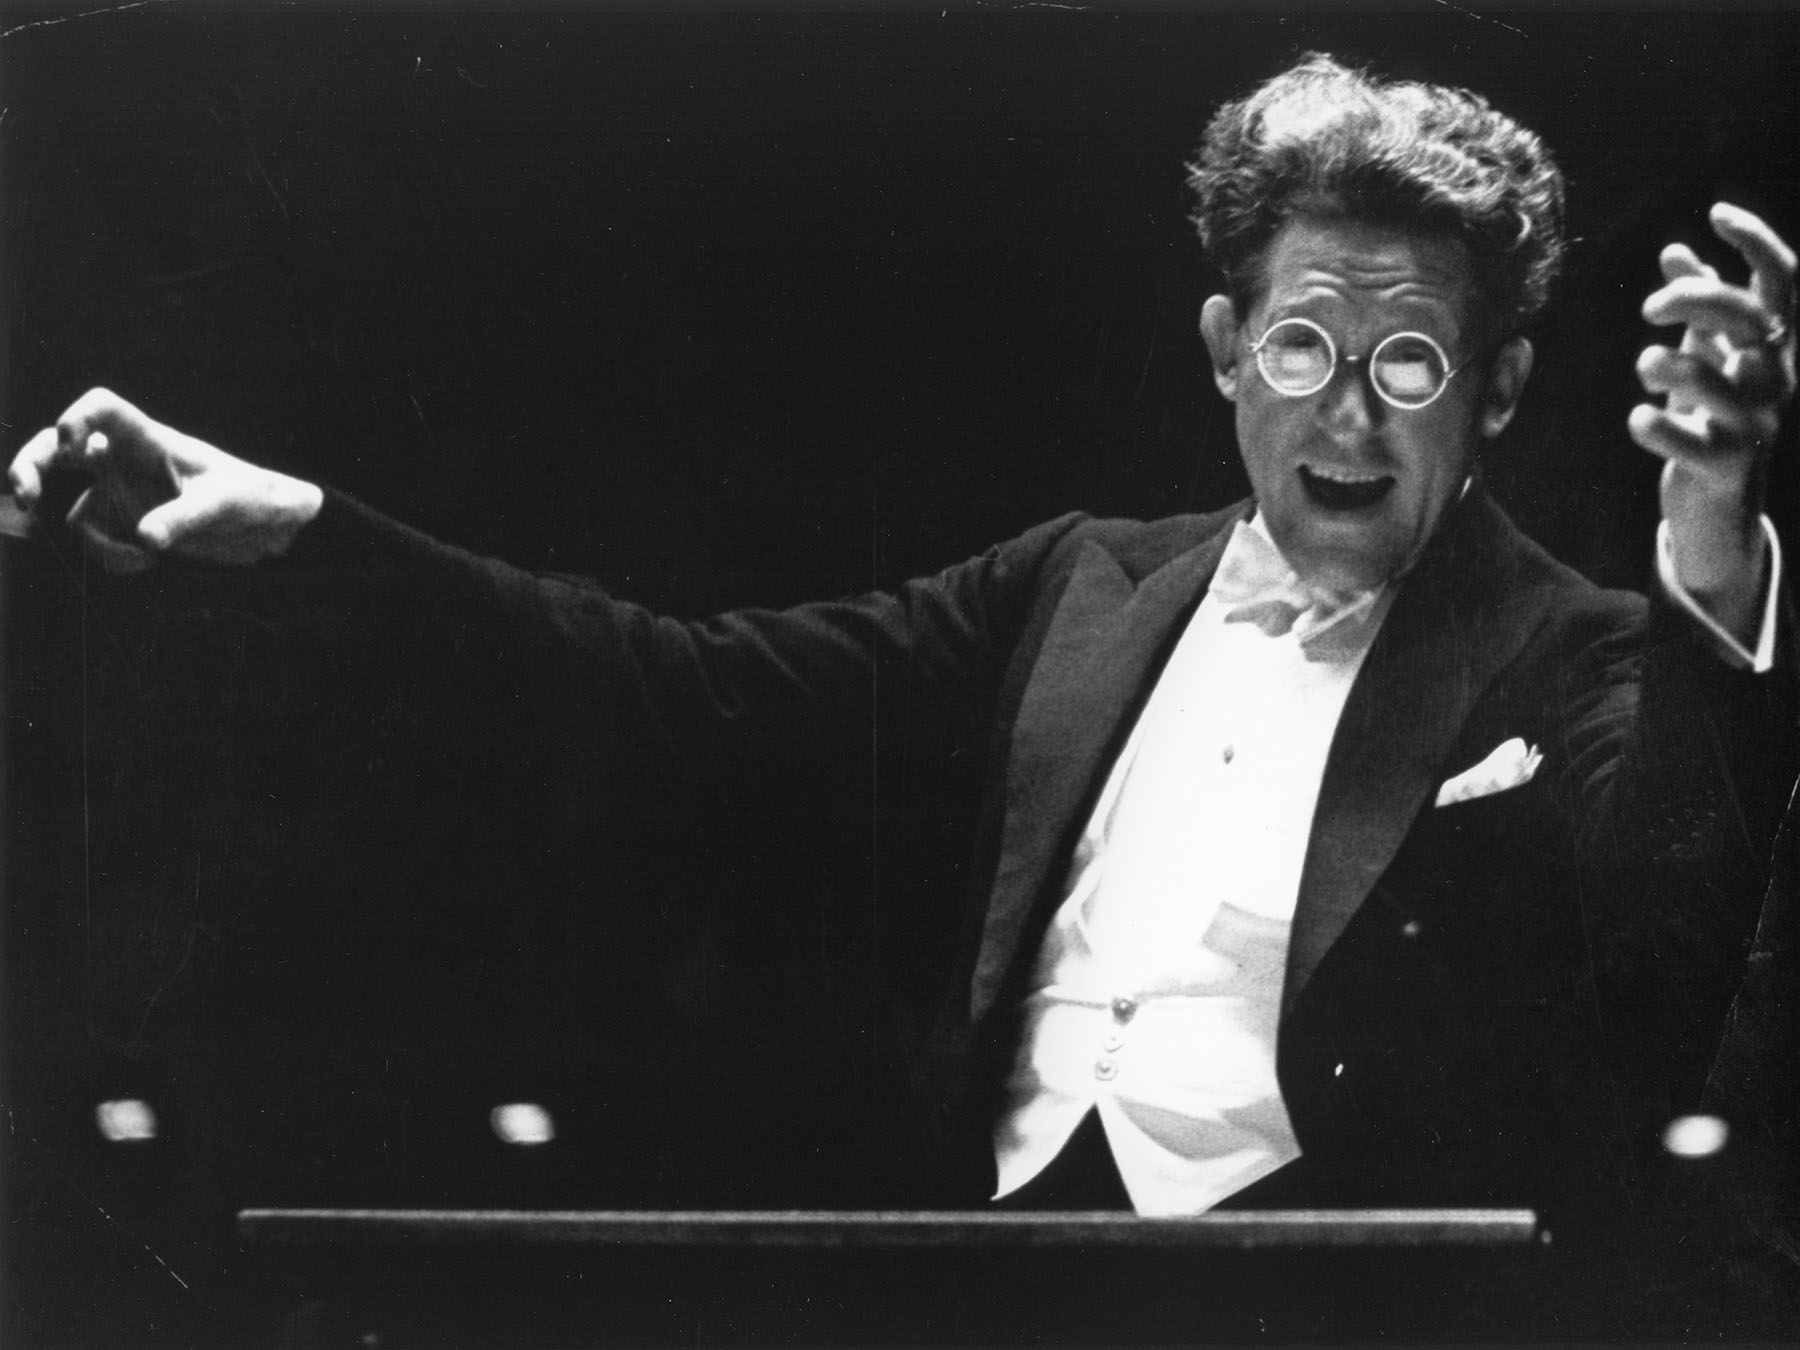 Artur Rodzinski conducting the Orchestra. He is facing the viewer, has a huge, excited smile on his face, and is wearing large glasses.